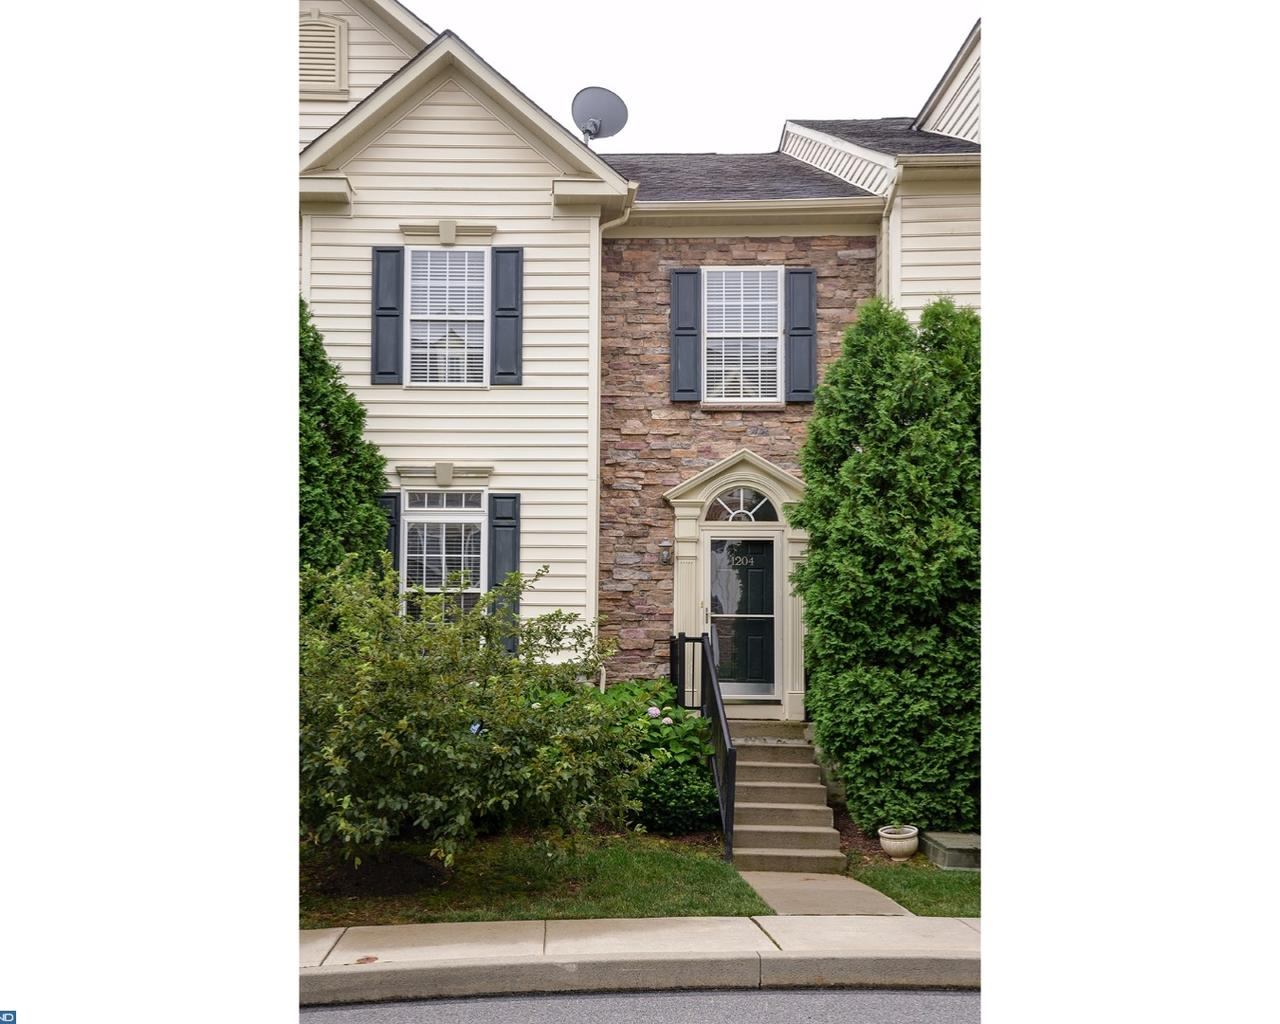 Property for sale at 1204 HENDRIX LN, Phoenixville,  PA 19460